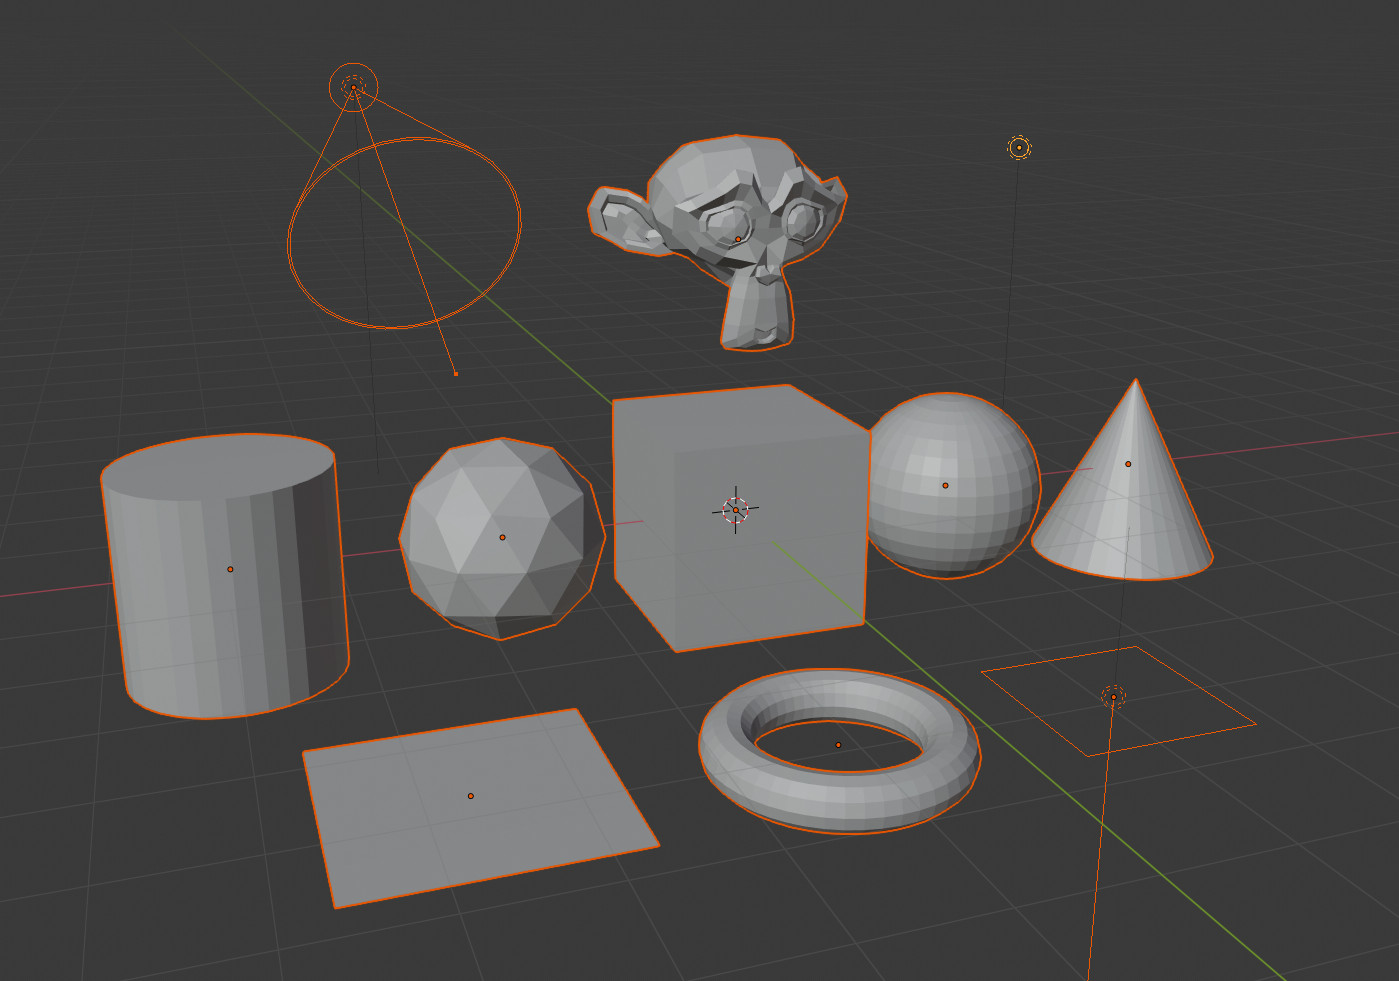 Blender How To Select All Objects Simply Explained All3dp